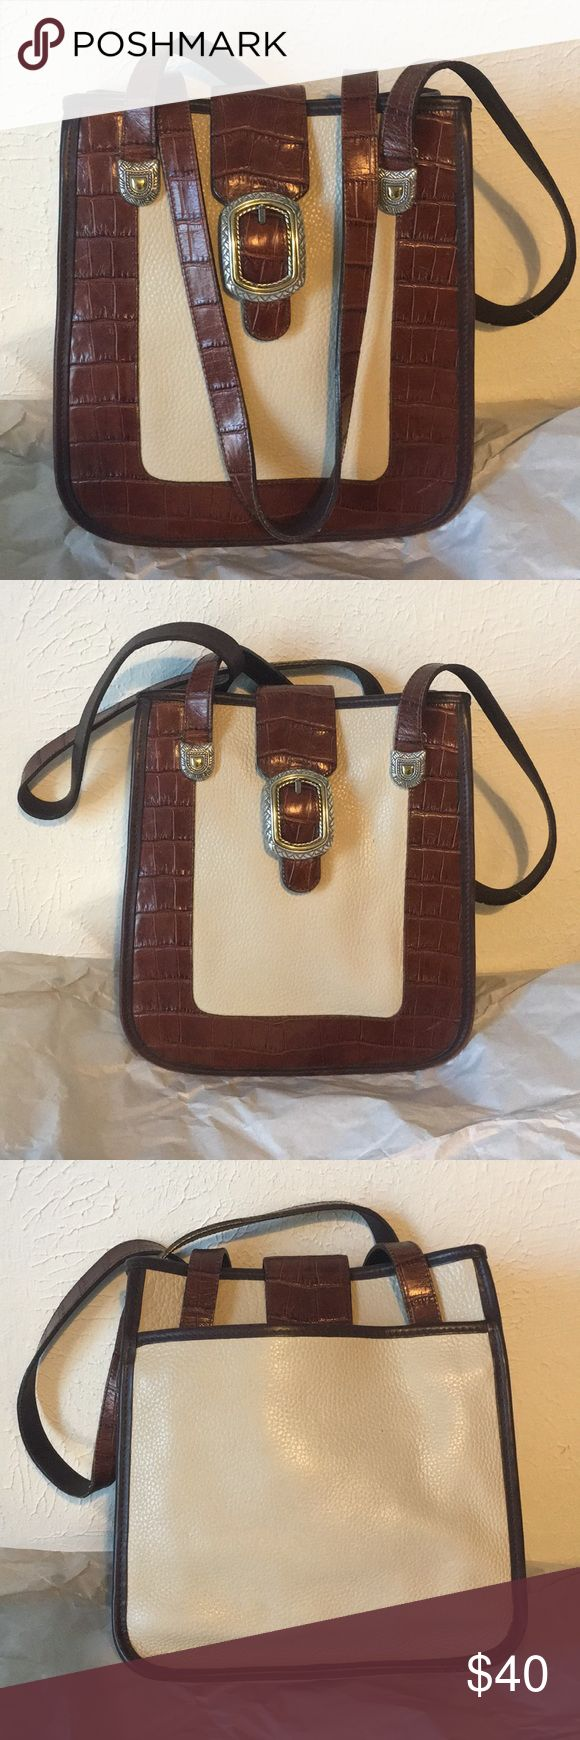 """Brighton Purse Brighton Purse in perfect condition! Measurements are 11"""" x 9&3/4"""" with about 13"""" handle drop and comes with garment bag! Brighton Bags Shoulder Bags"""